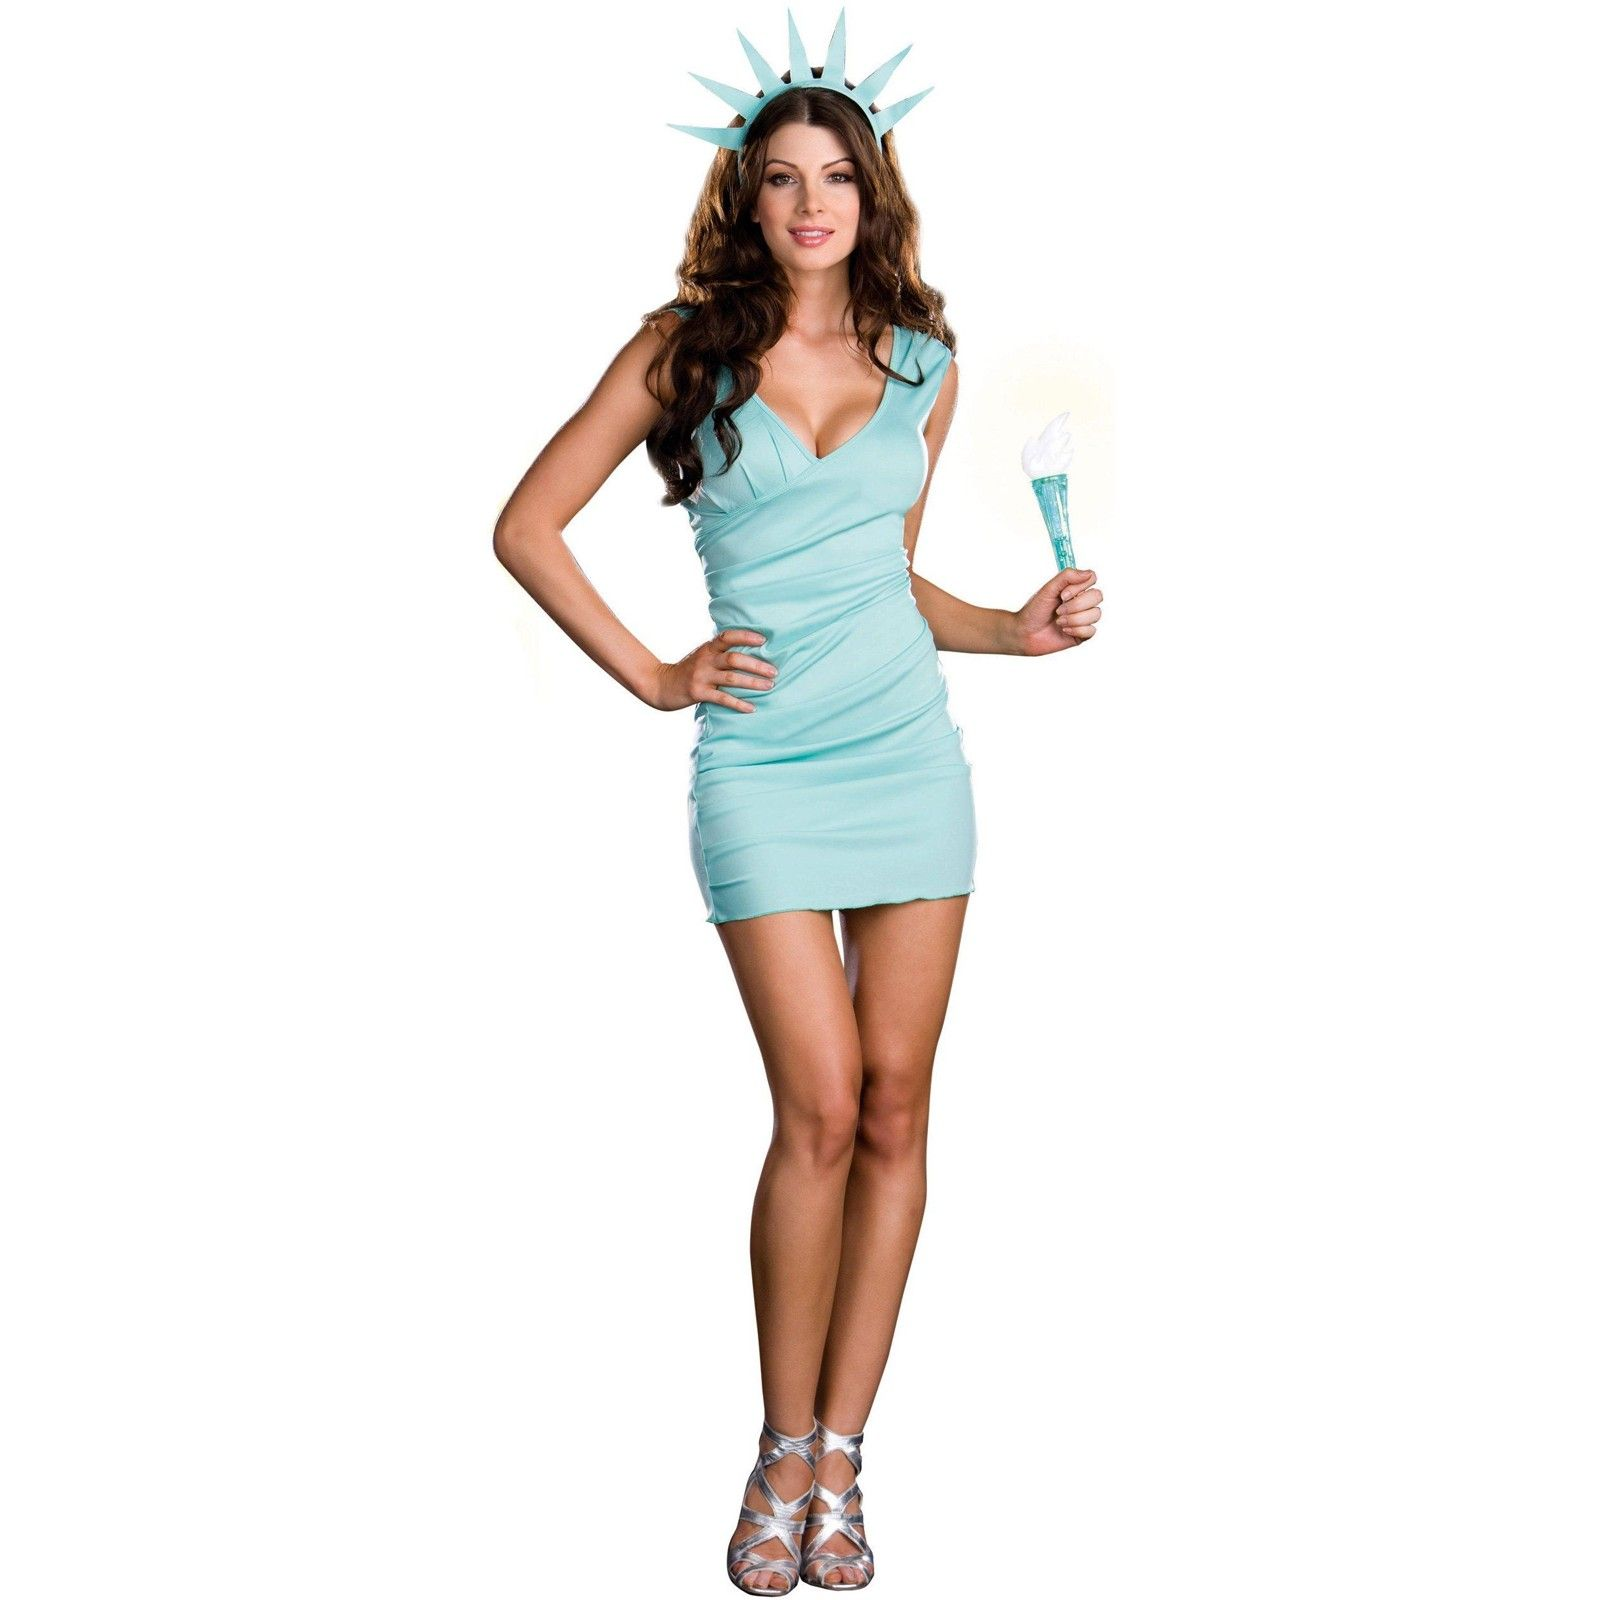 miss liberty adult costume | costumes